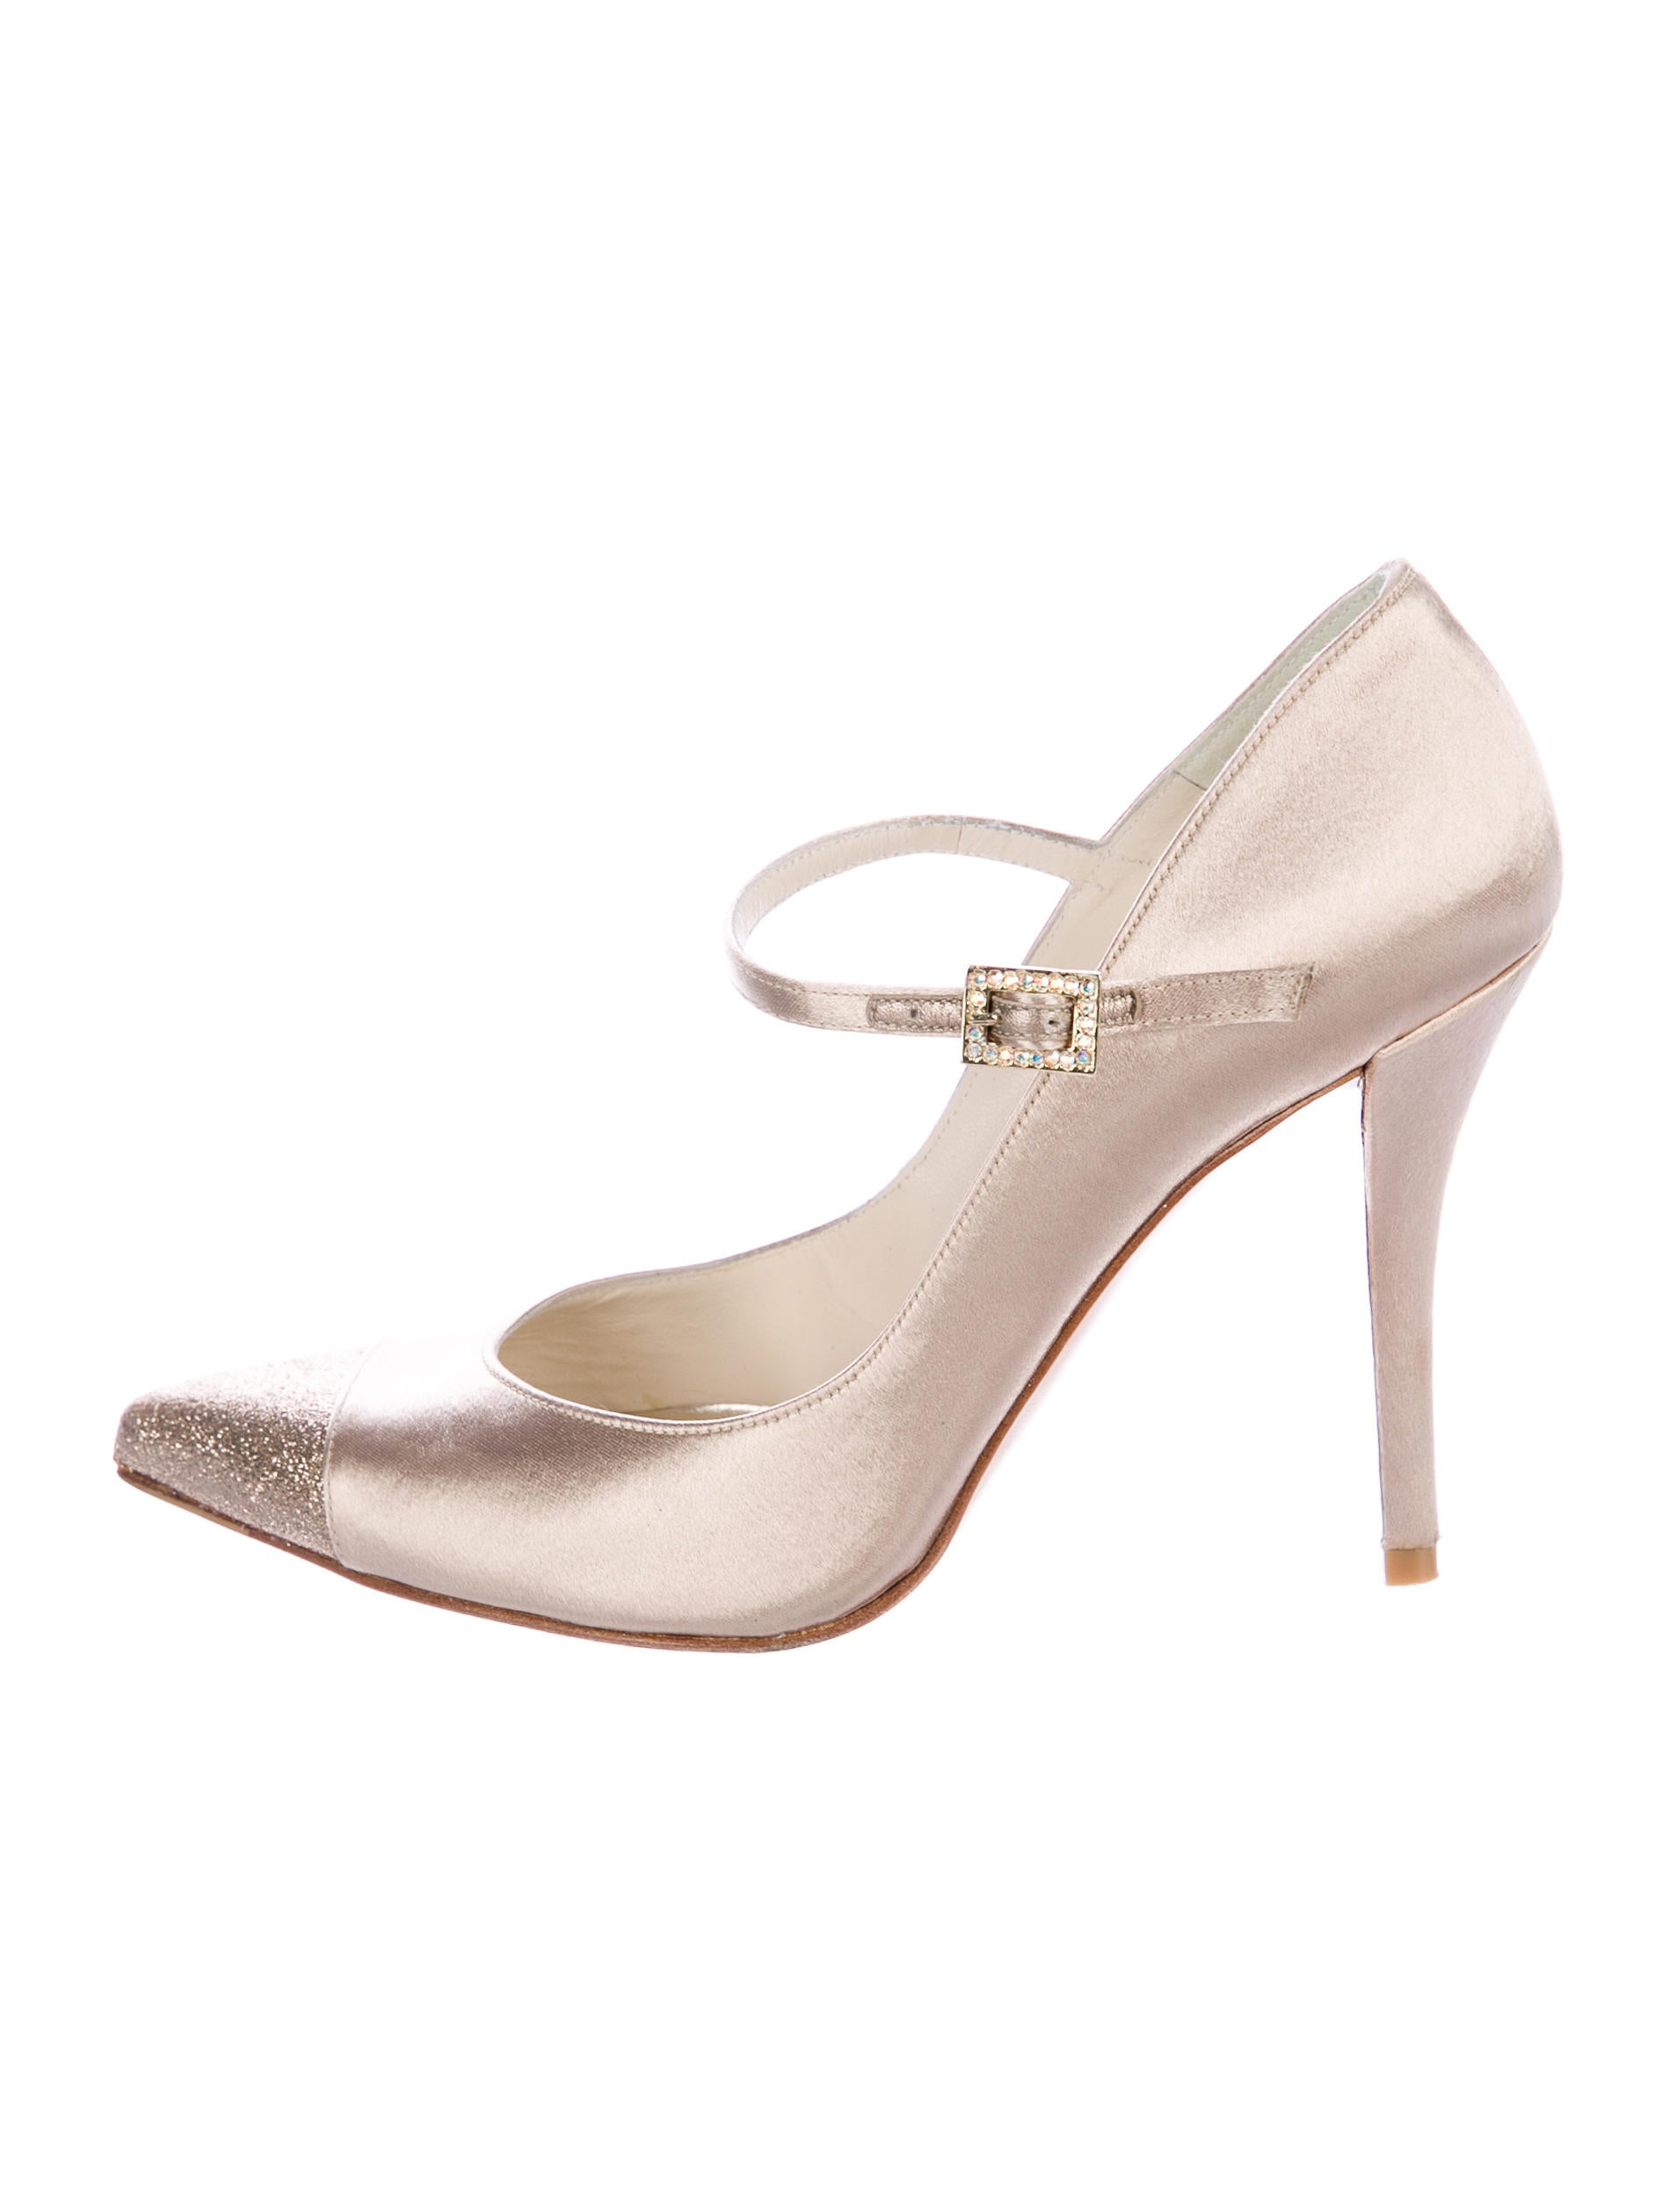 discount purchase release dates sale online Stuart Weitzman Satin Mary Jane Pumps T5mBl6mn